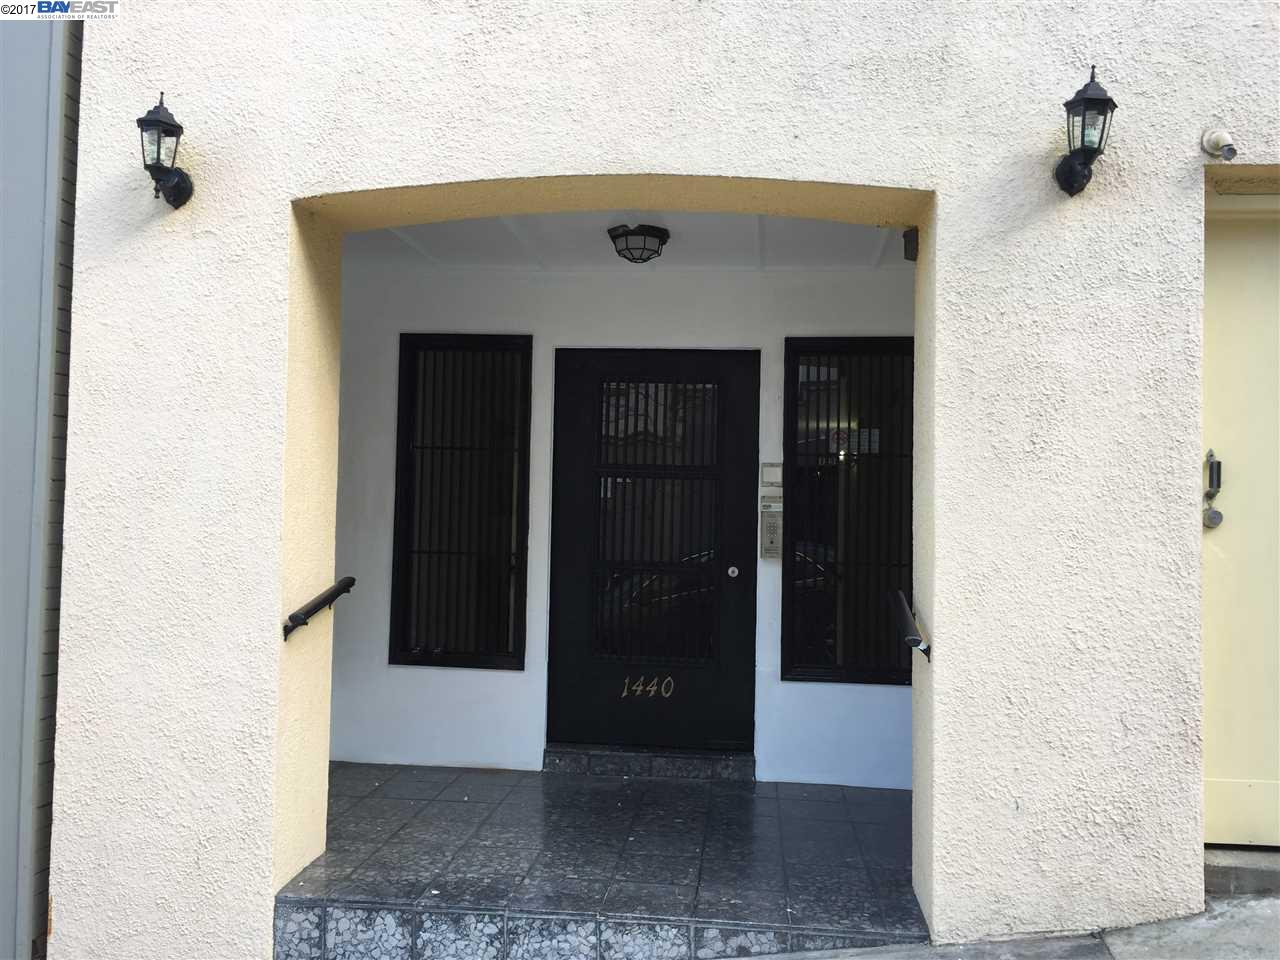 Additional photo for property listing at 1440 Jones 1440 Jones San Francisco, Kalifornien 94109 Vereinigte Staaten